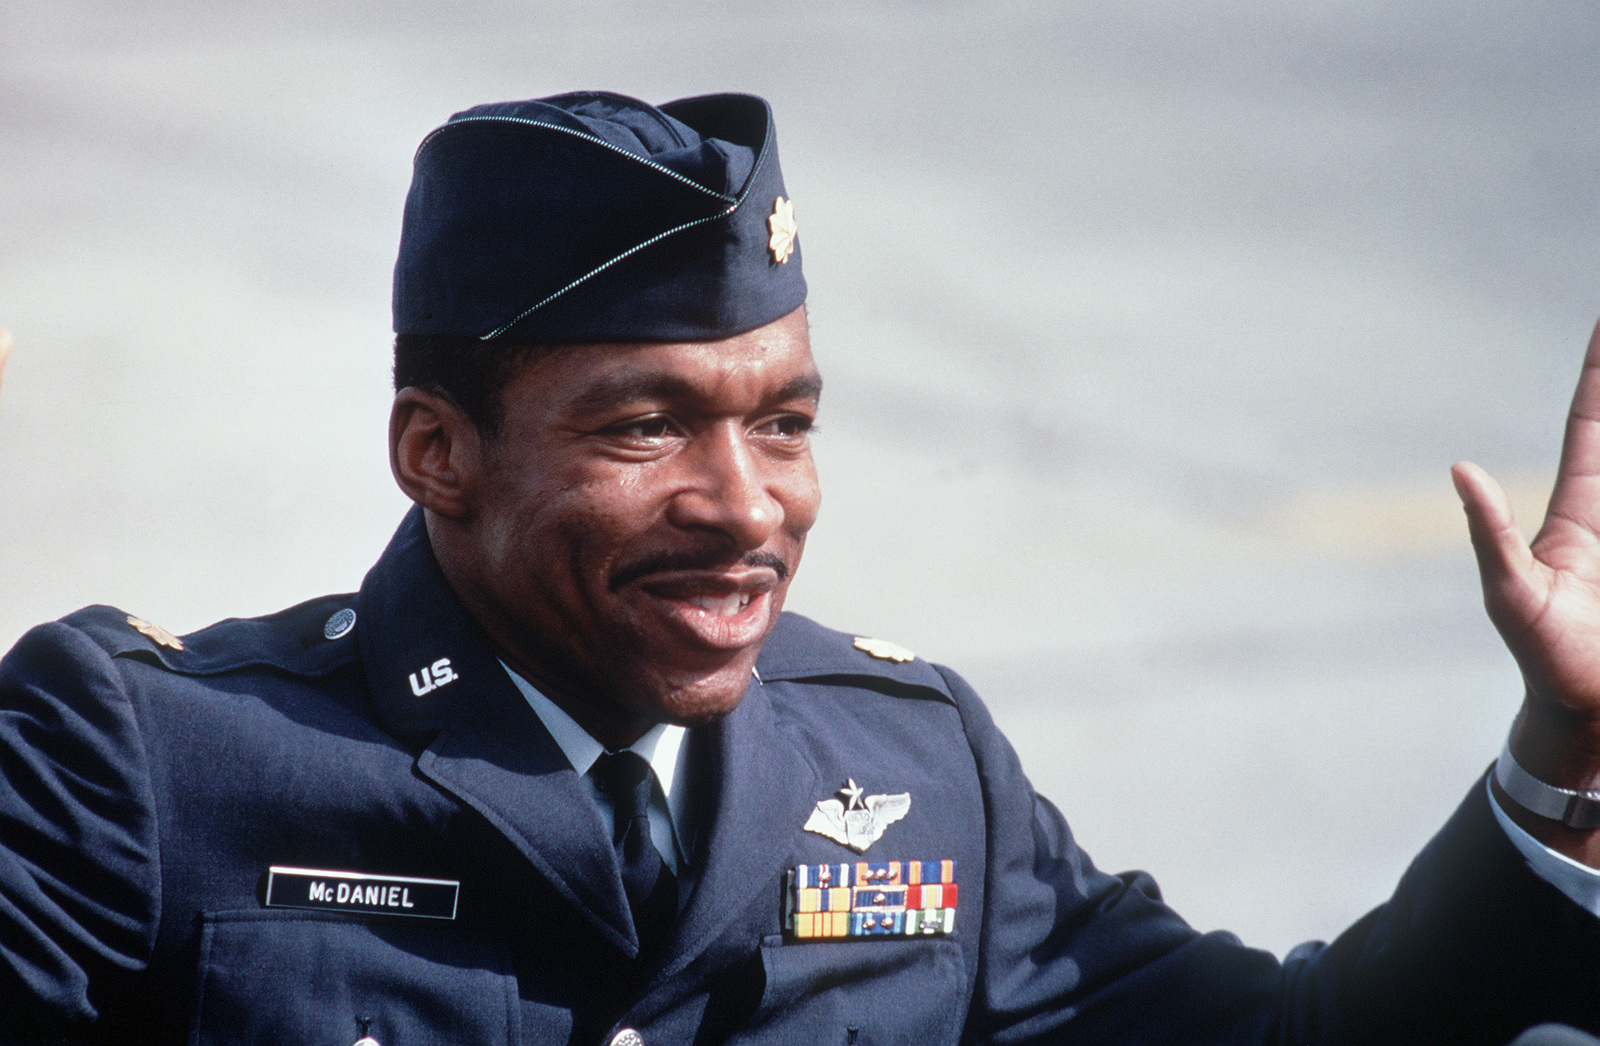 Former POW and U.S.Air Force MAJ Norman Alexander McDaniel (Captured 20 Jul 66) express delight at the reception he received from the public and the press on his arrival from Clark Air Base. MAJ McDaniel was released by the North Vietnamese in Hanoi on12 Feb 73